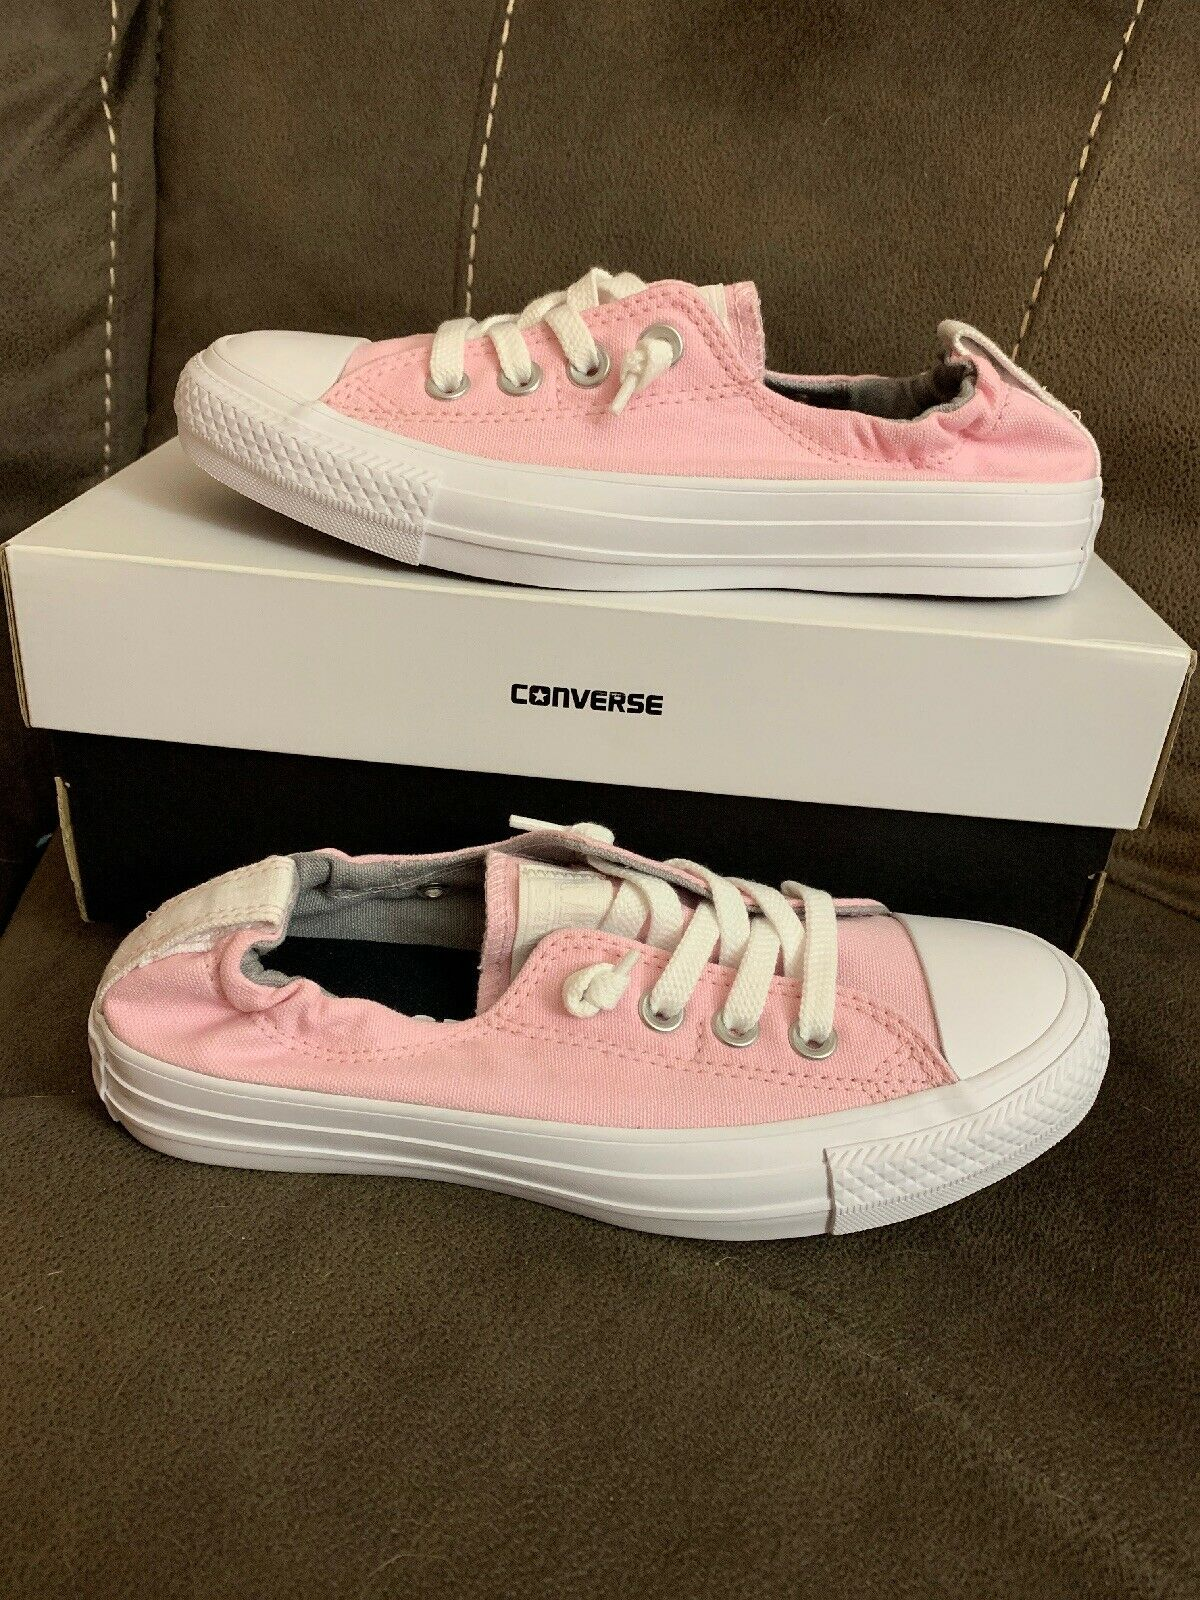 Converse Chuck Taylor All Star'70 Blank toile femme SZ 6 rose